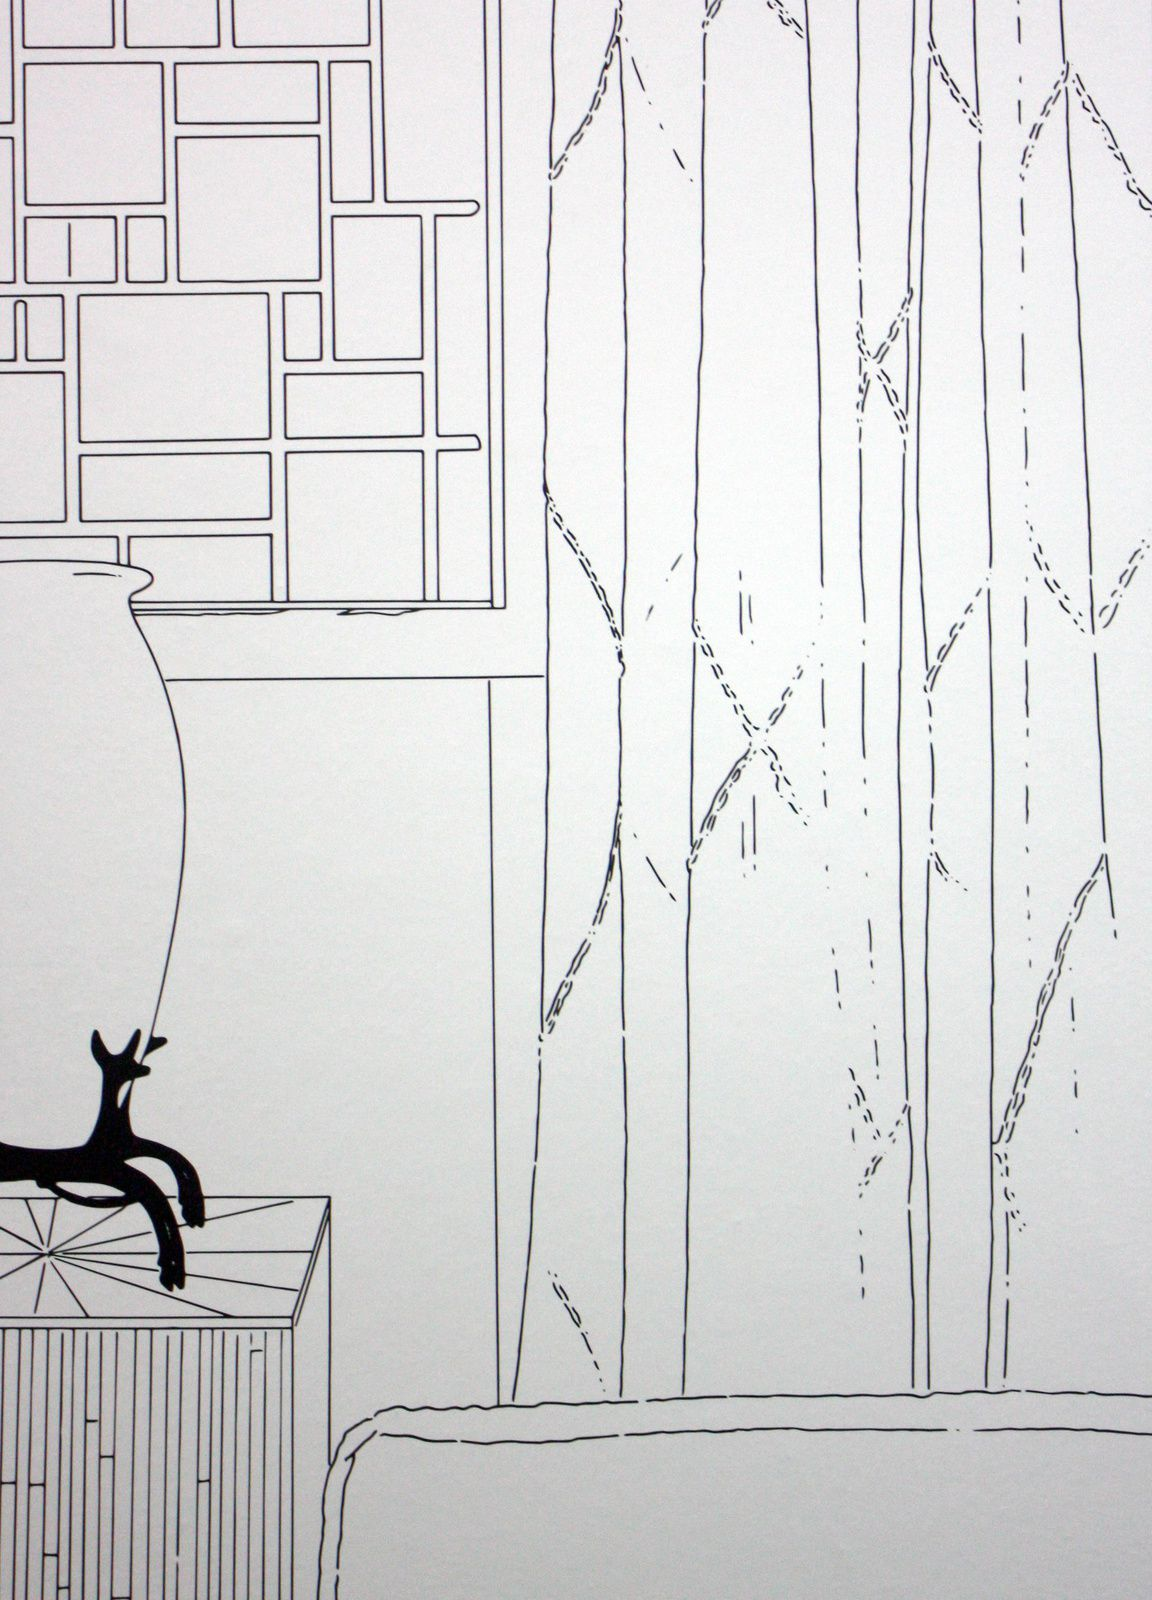 Louise LAWLER, 1997-1998-2014